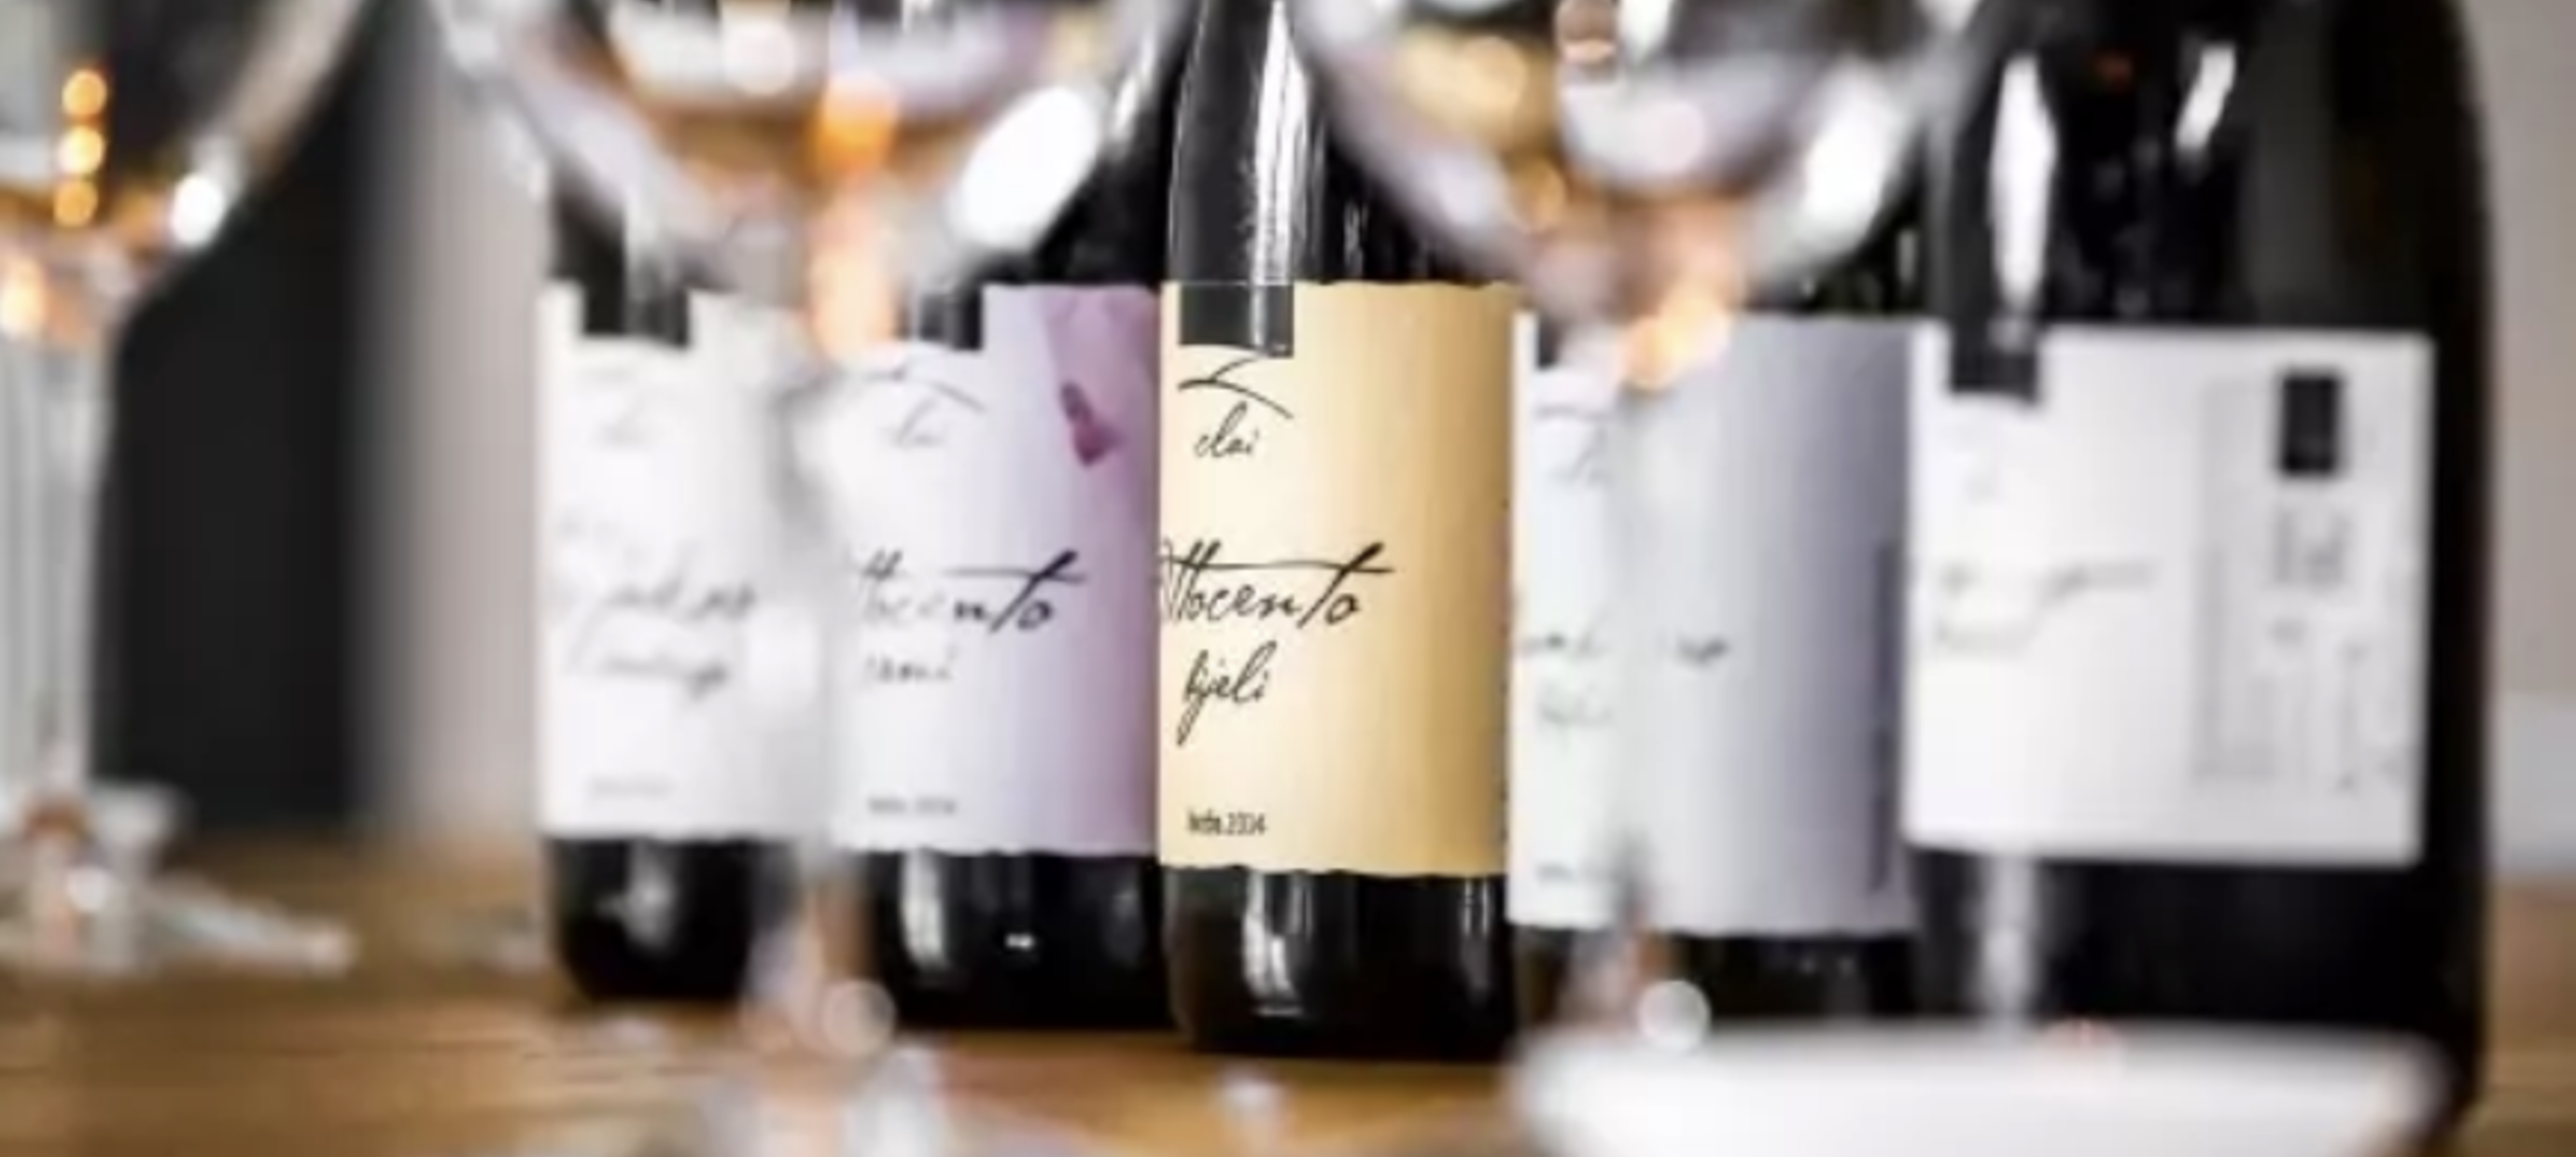 The story behind Clai wines